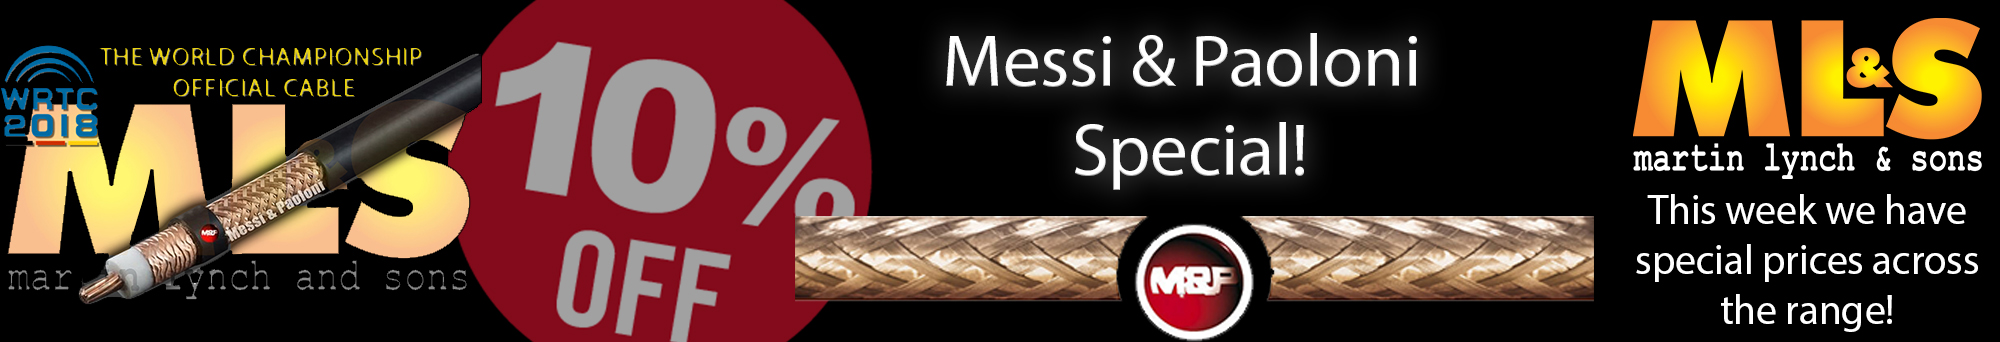 Messi Special Offer M